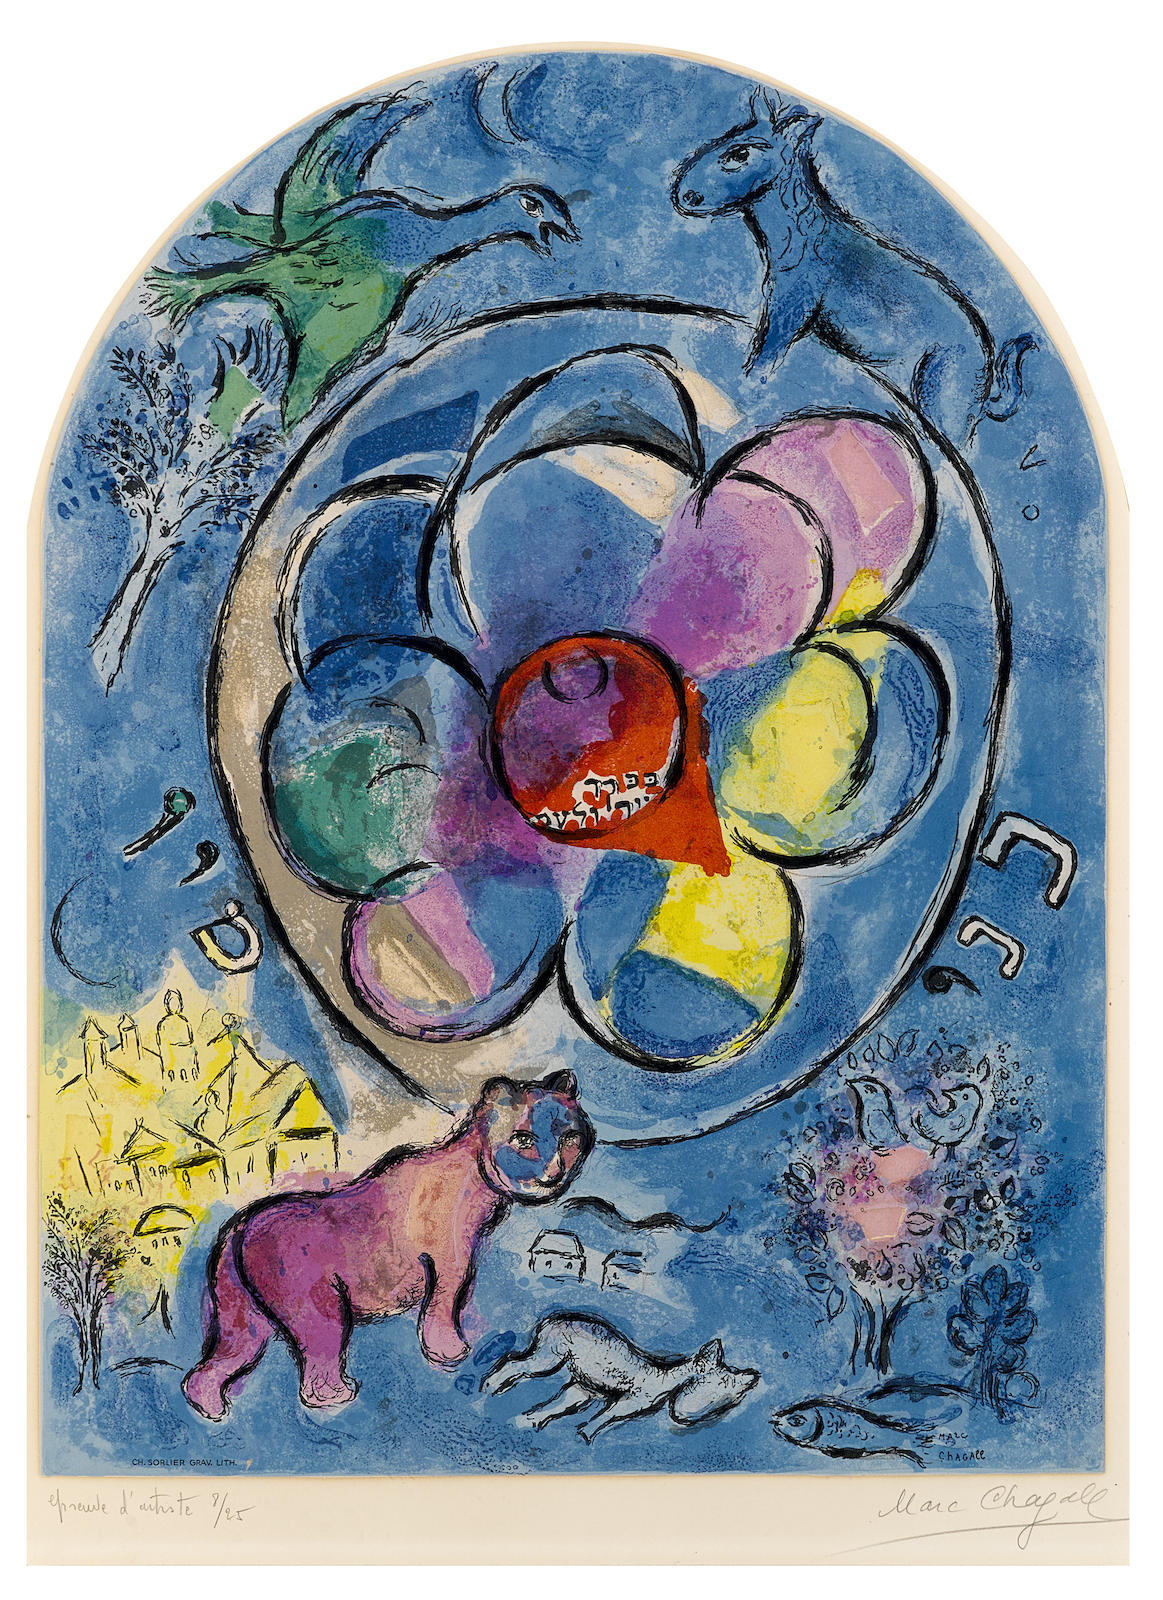 Marc Chagall-After Marc Chagall - The Tribe of Benjamin, from Twelve Maquettes of Stained Glass Windows for Jerusalem (M. CS. 23)-1964